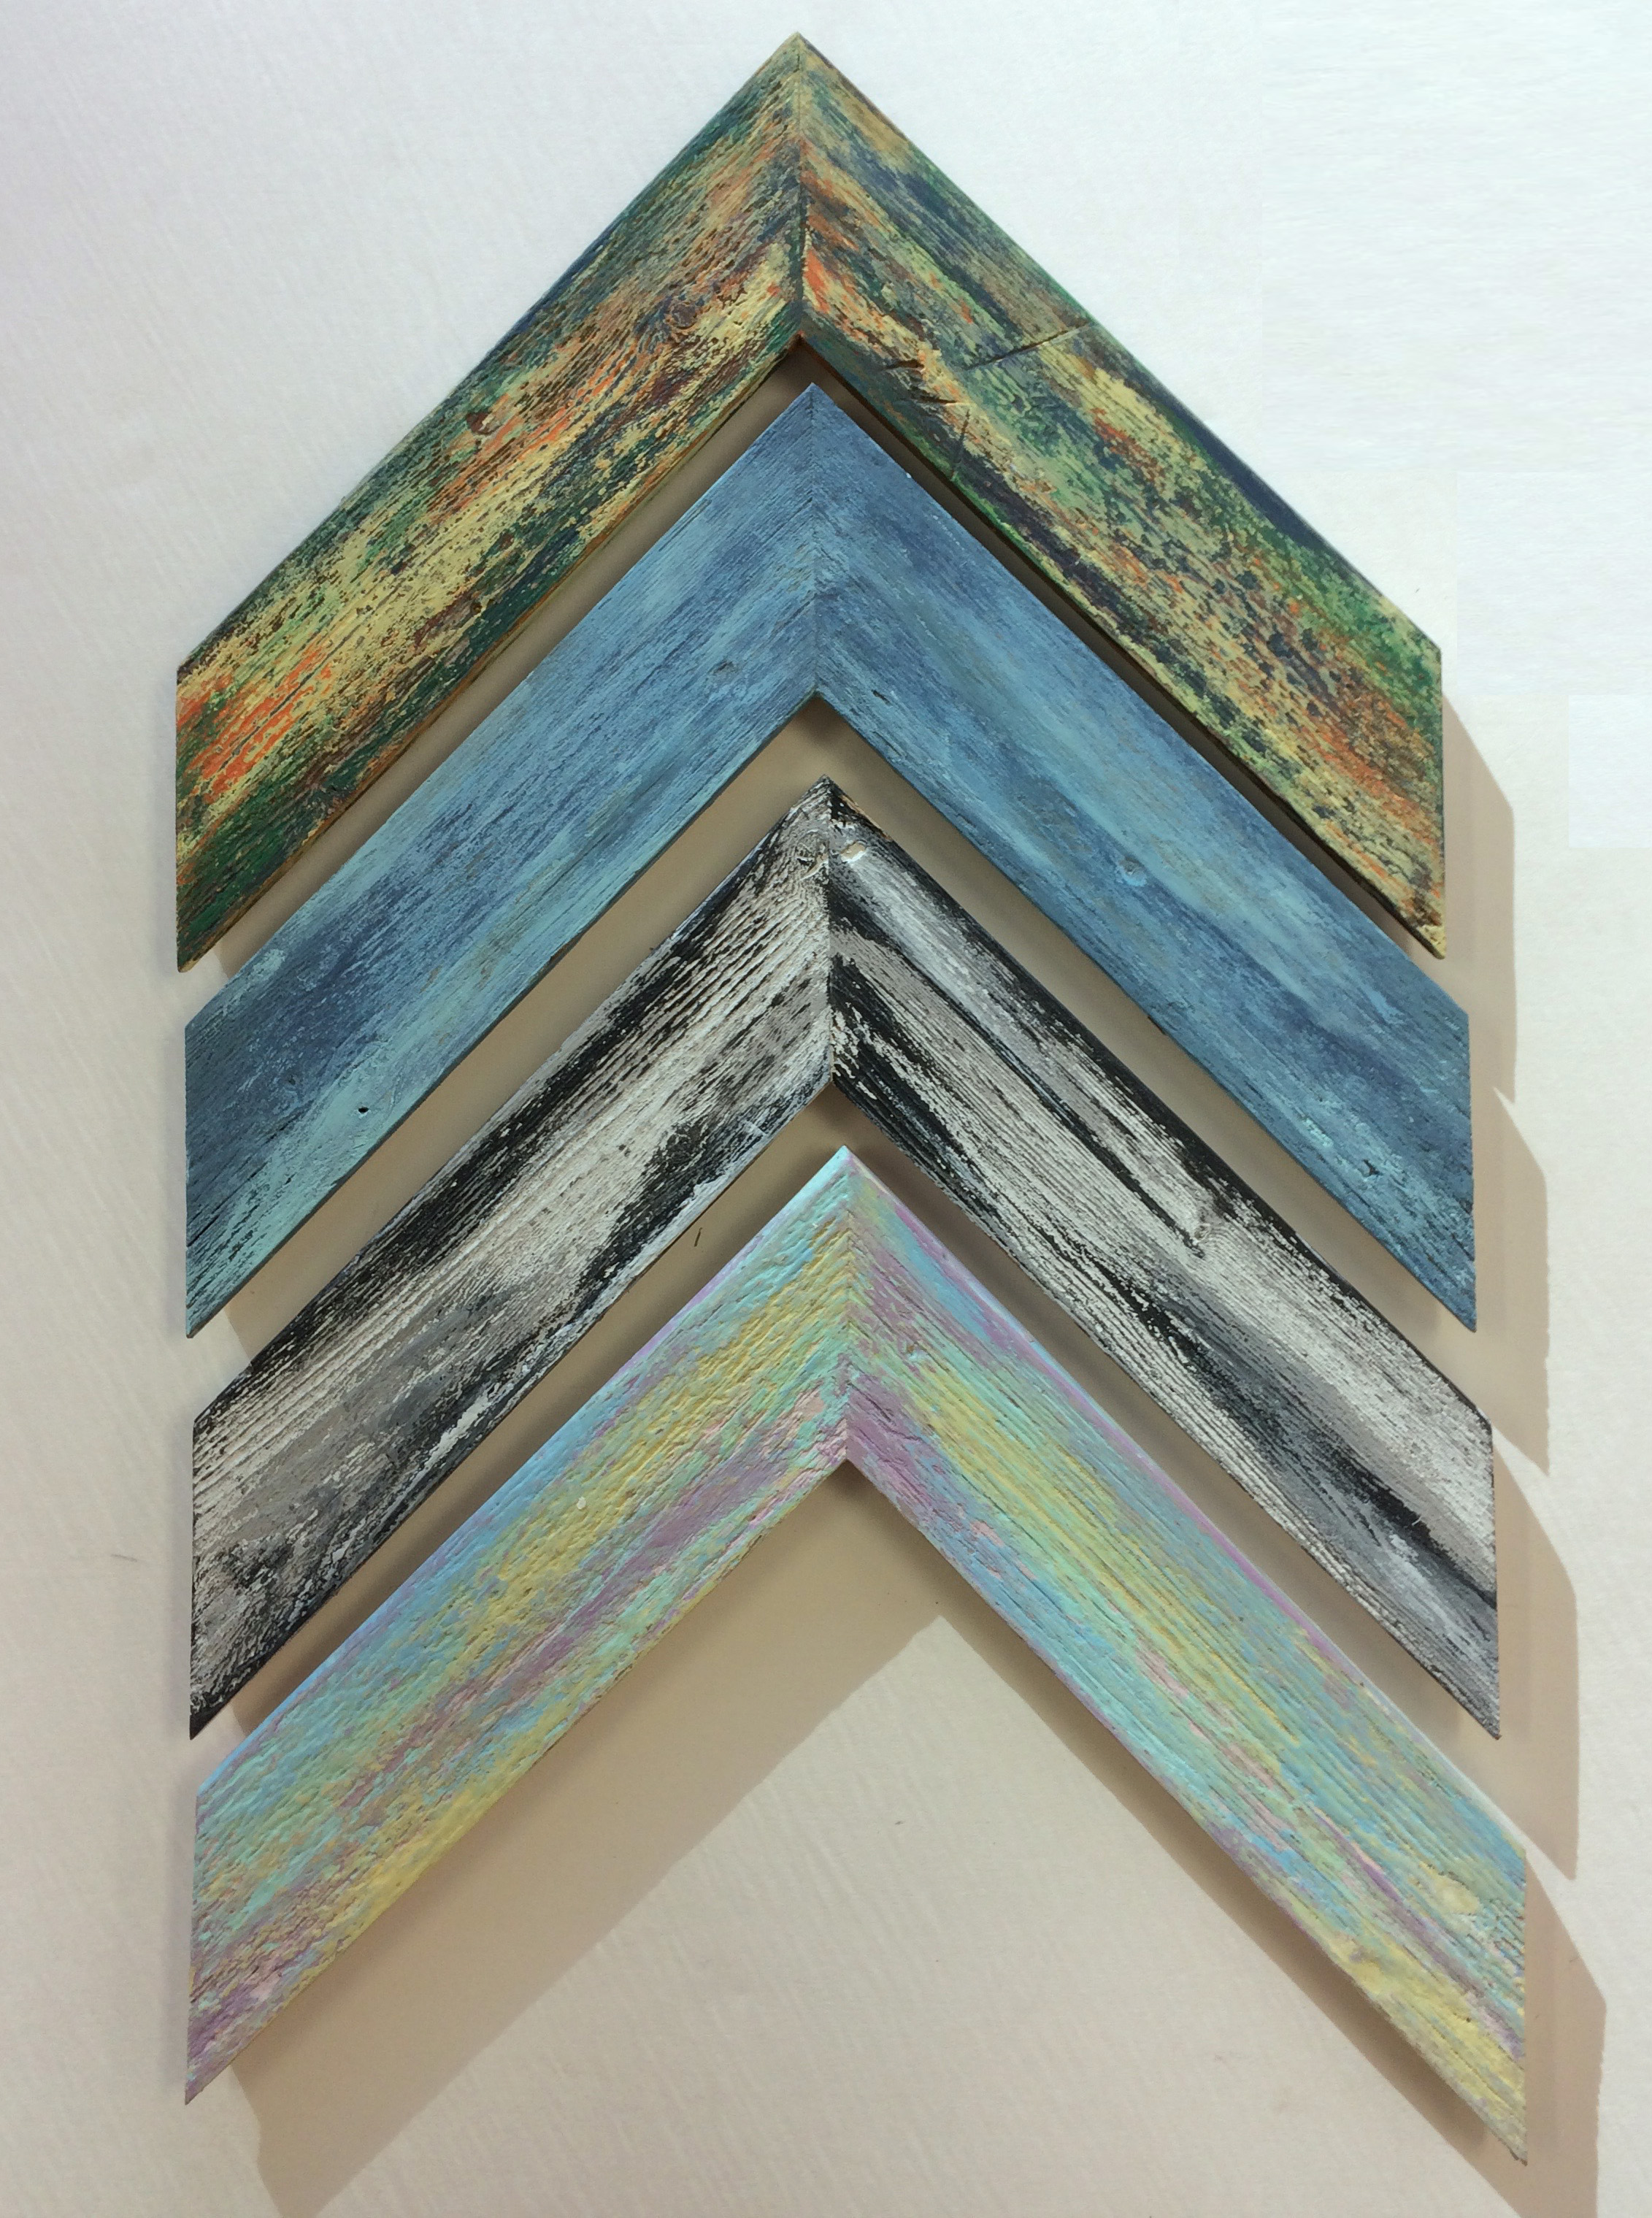 Barnwood repeatedly painted and sanded until the colors are infused into the wood